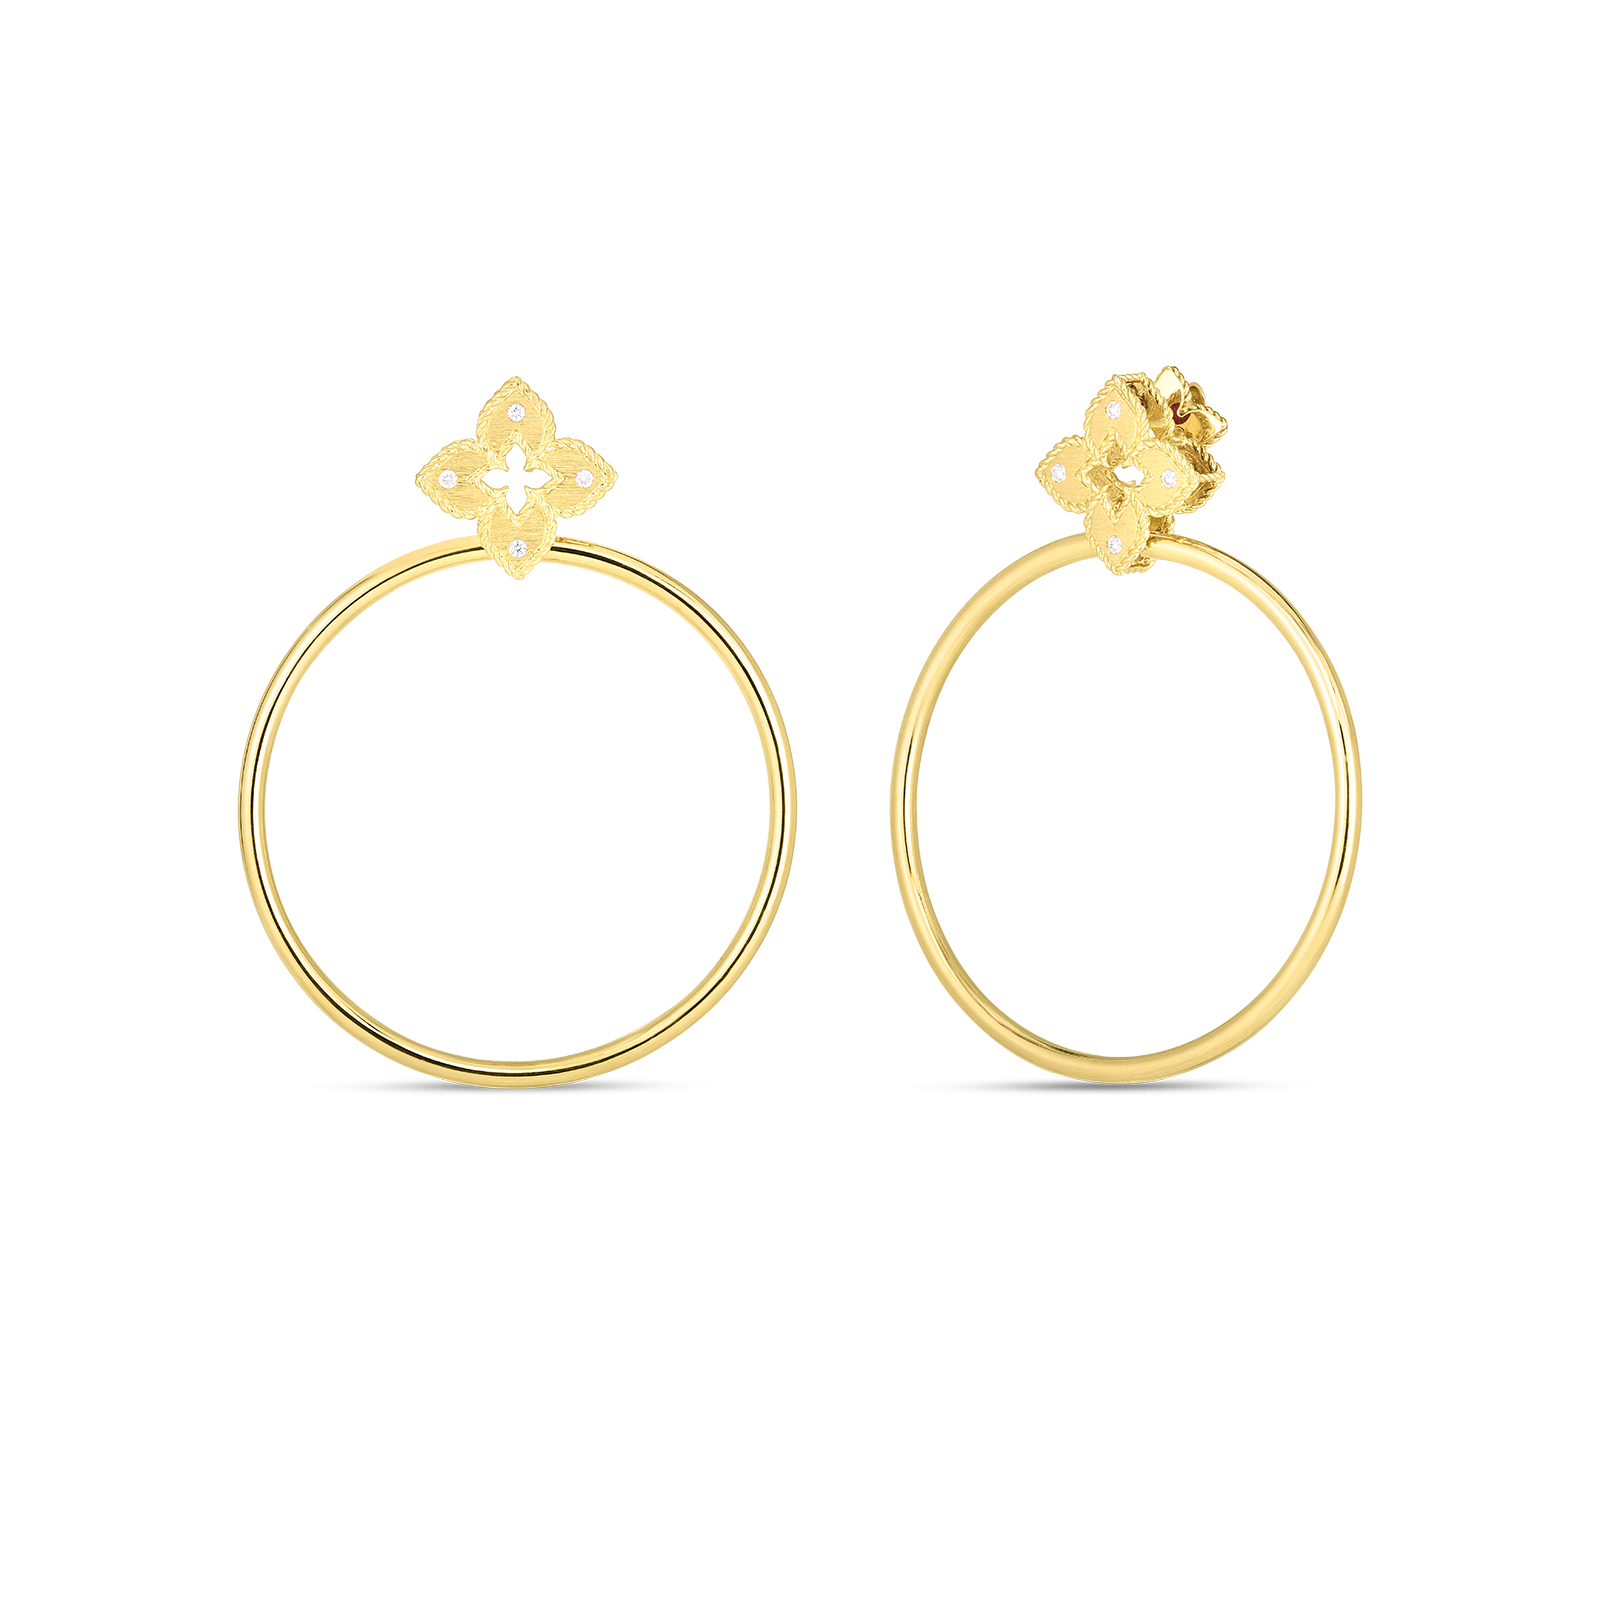 Roberto Coin Petite Venetian Princess Flower Hoops in 18K Gold main view